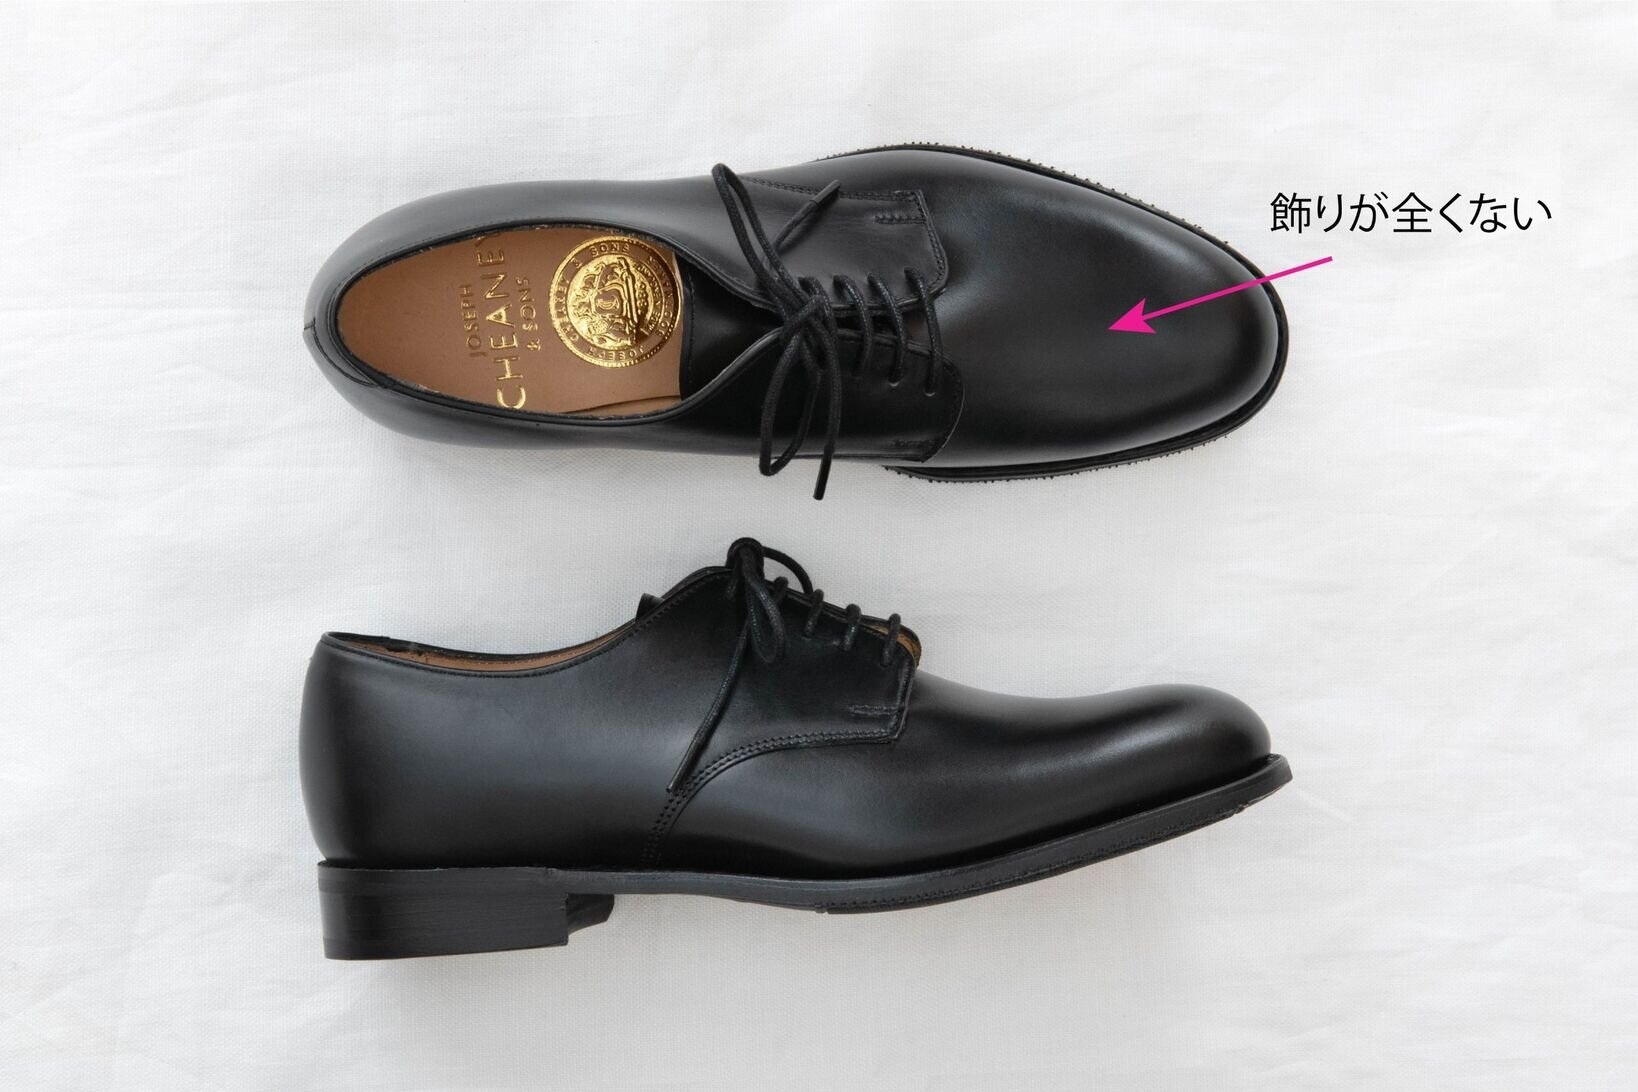 """「<a href=https://www.british-made.jp/c/brands/cheaney/cheaney-women/cheaney-plain-l/gd2105 target='_blank'>LORA</a>」¥63,000+税/ジョセフ チーニー(ブリティッシュメイド 銀座店) ▶︎靴の詳細は<a href=""""https://muuseo.com/square/articles/1322"""" target=""""_blank"""">連載第2回</a>をチェック!"""